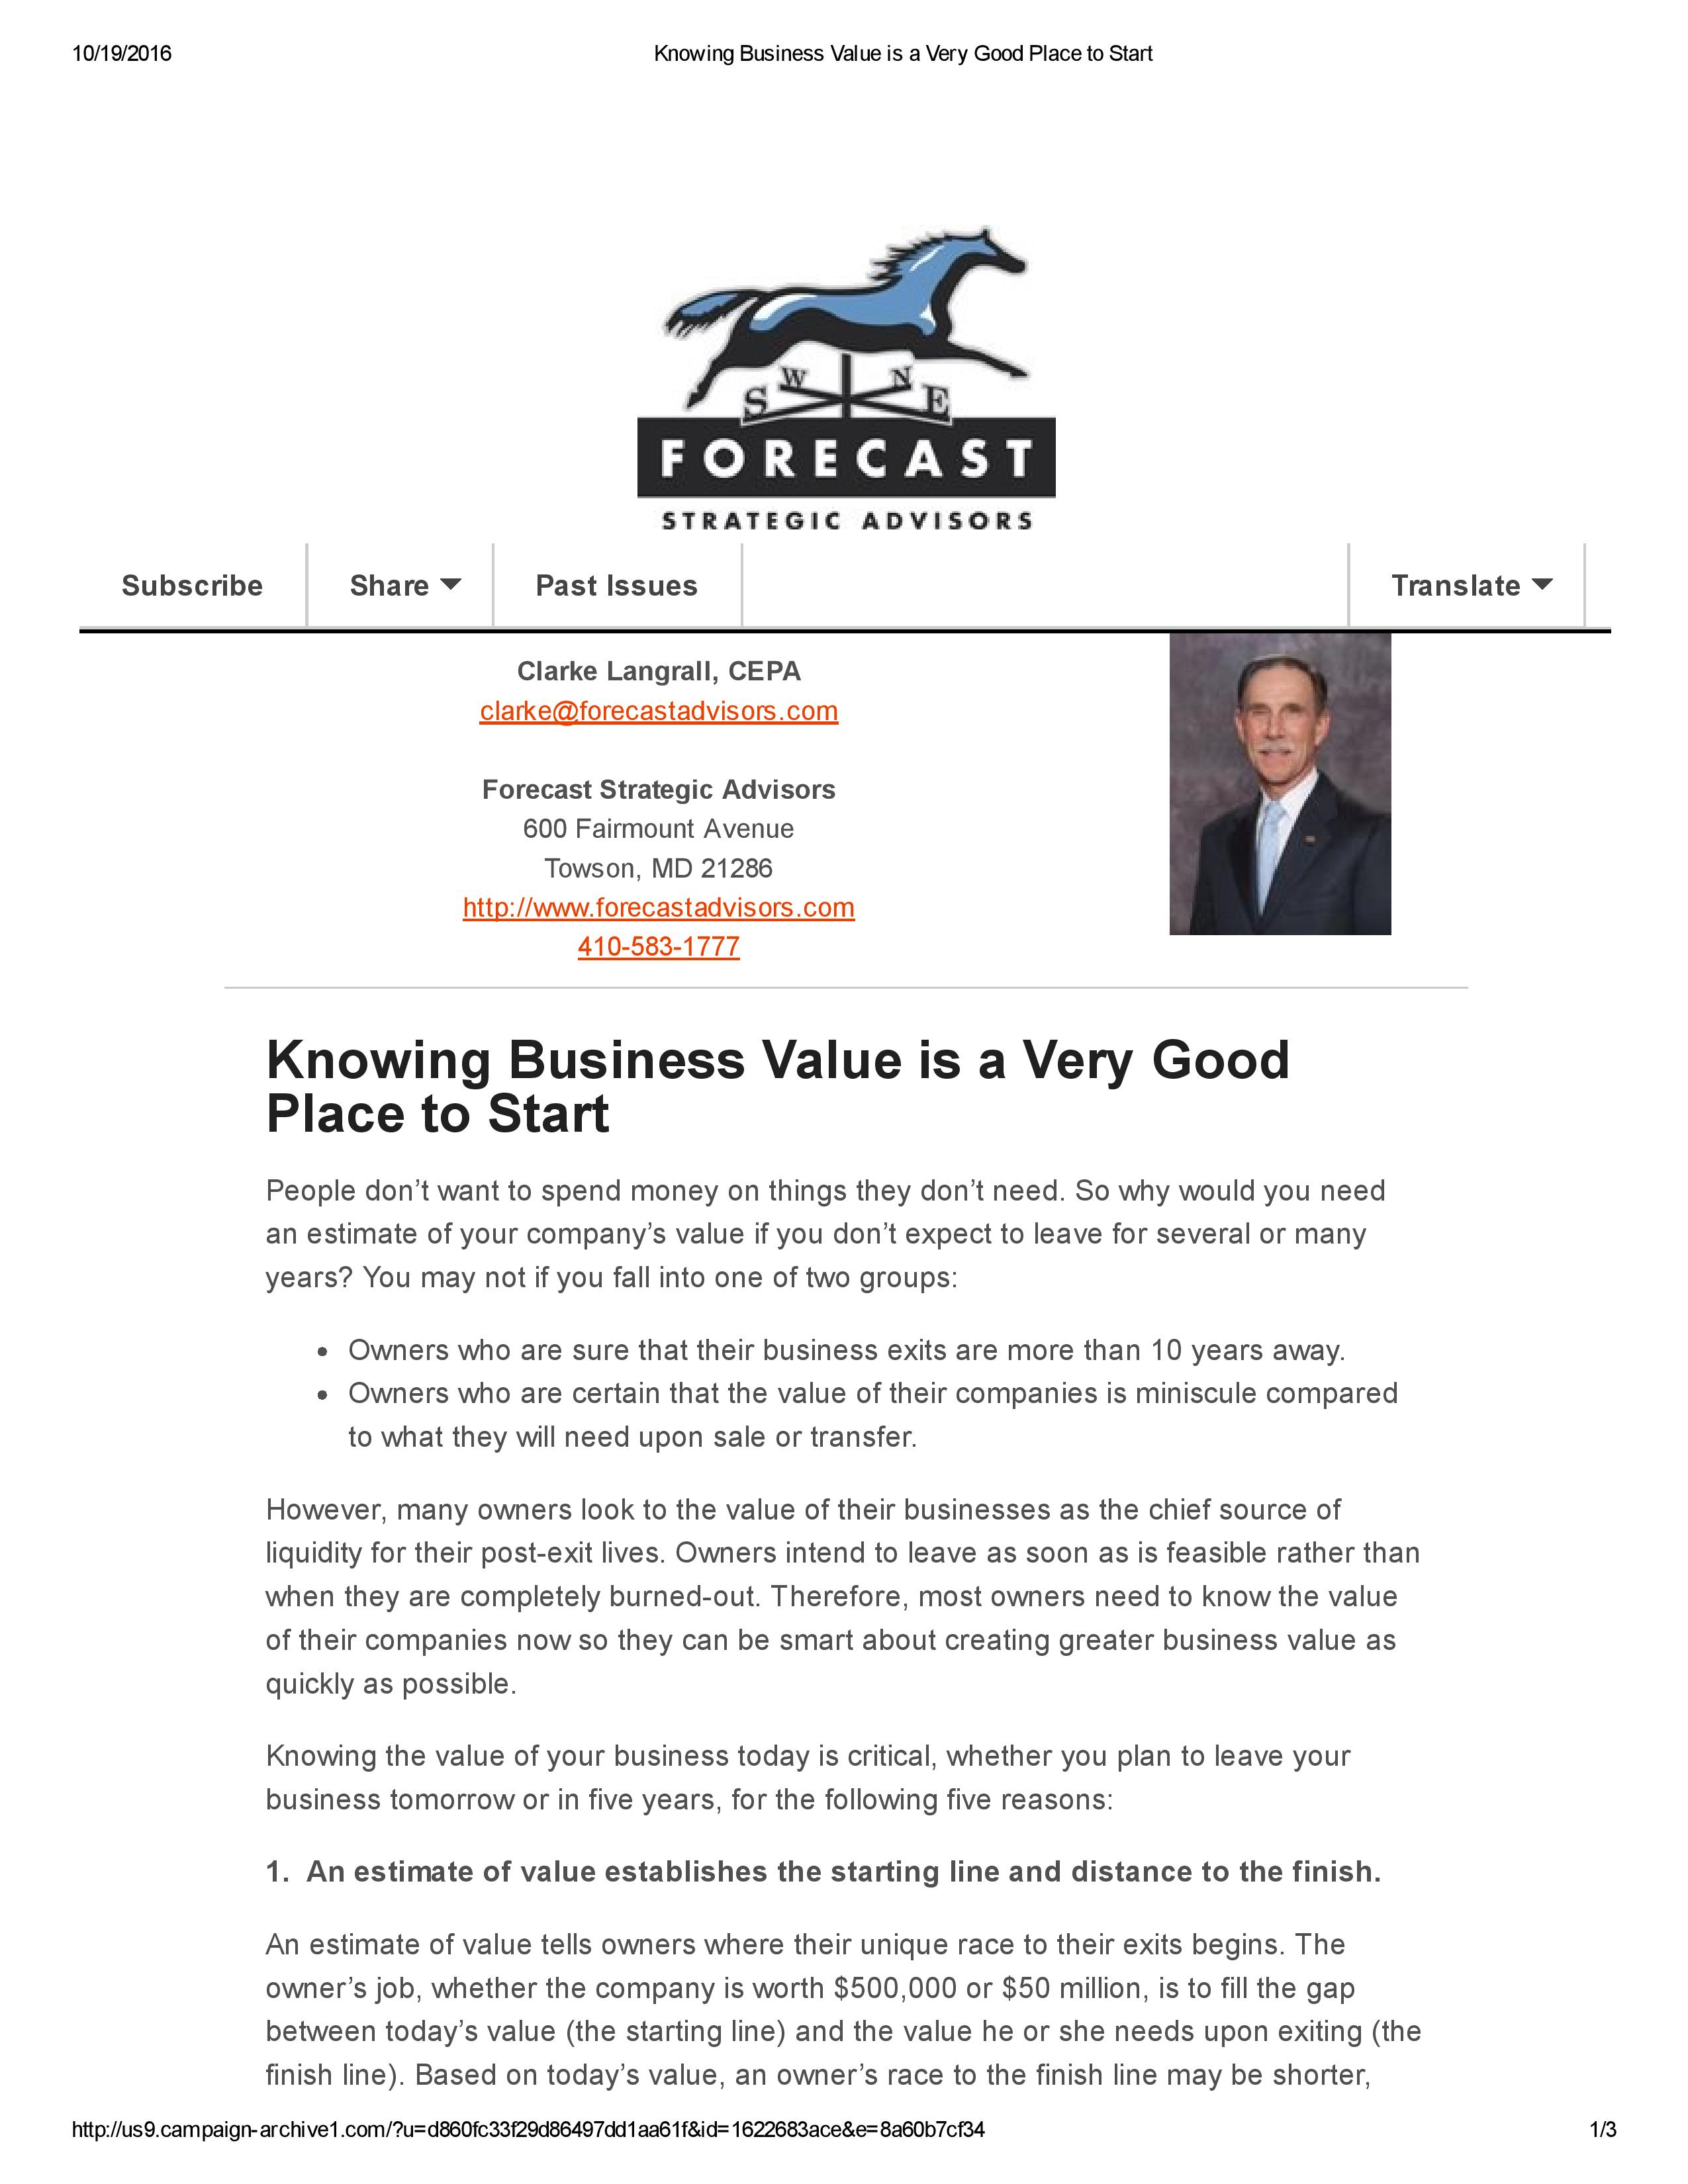 knowing-business-value-is-a-very-good-place-to-start-page-001